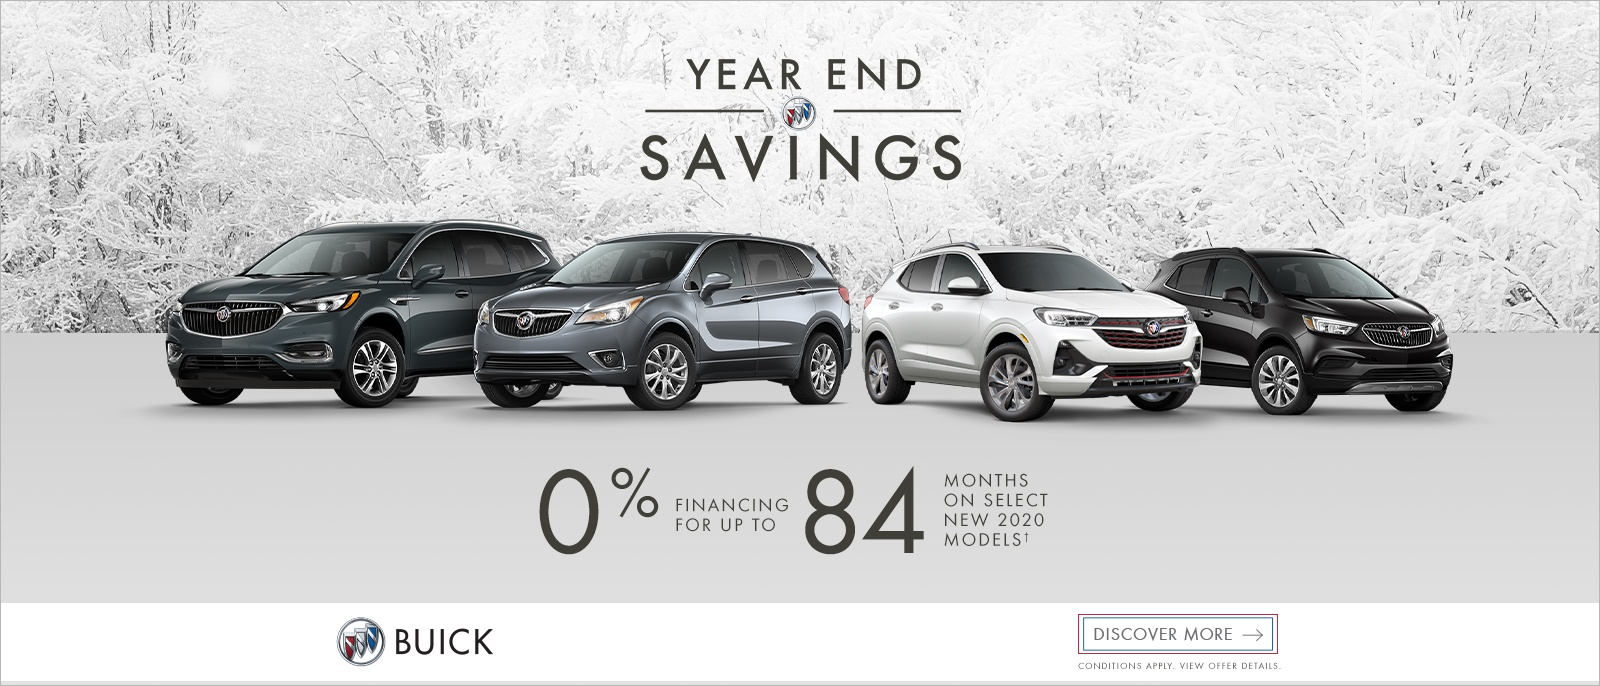 Year End Savings – Buick Family